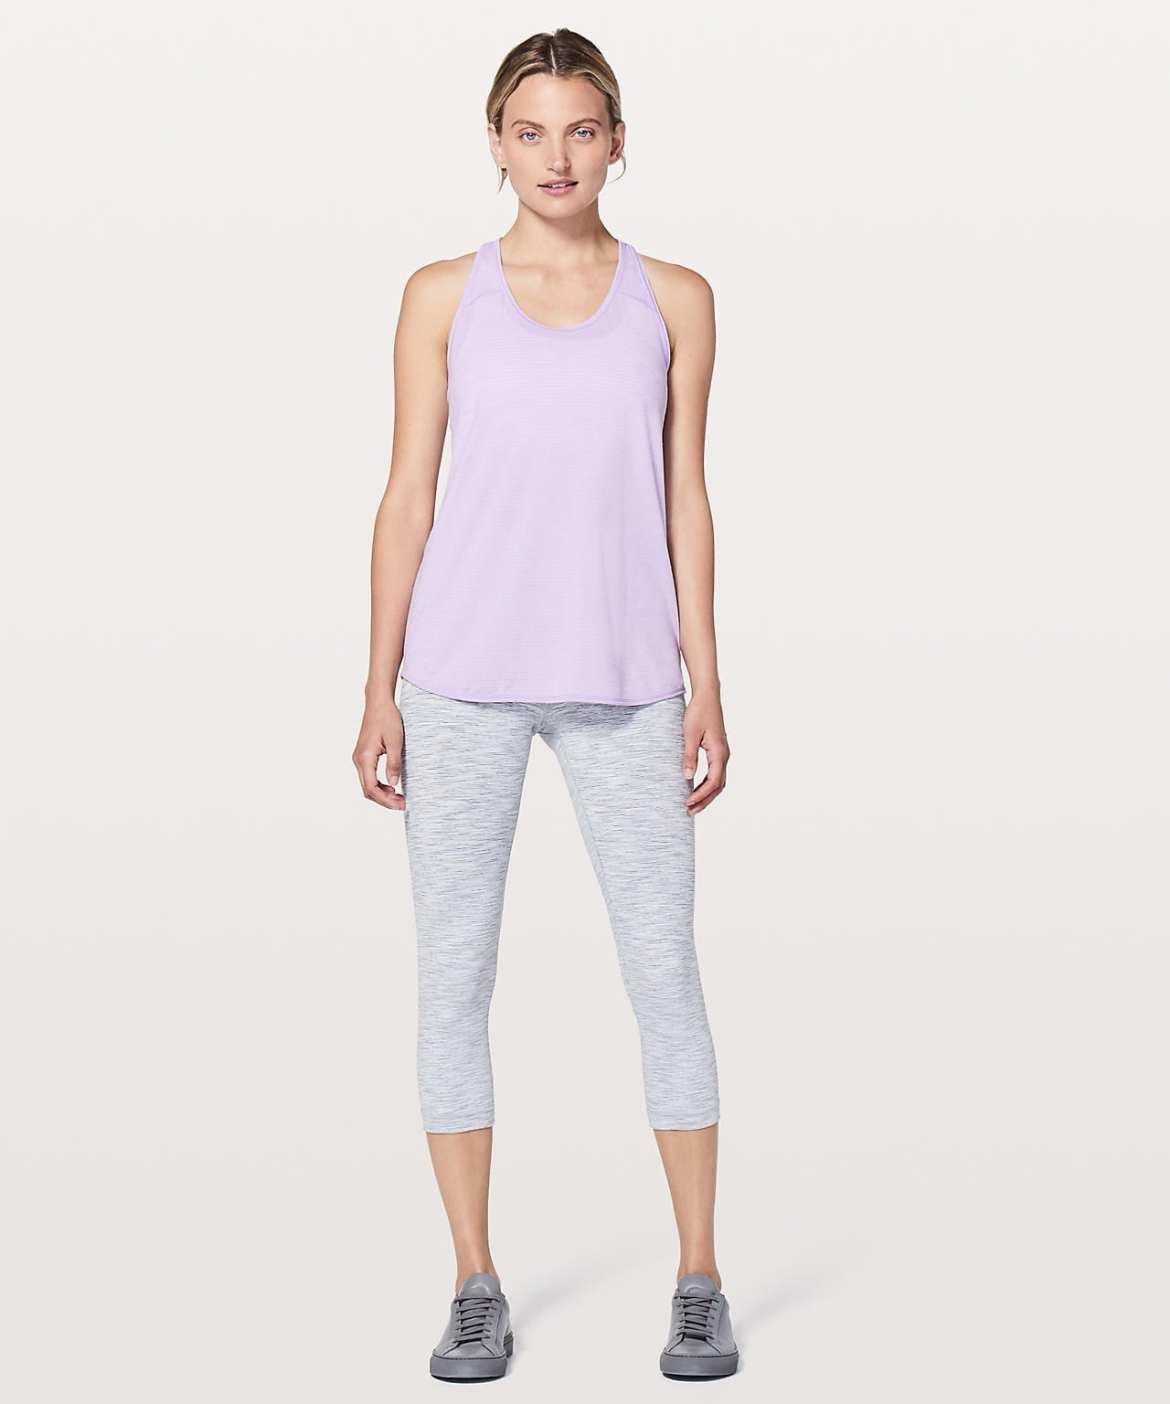 Lululemon Upload - Essential Tank - Heathered Sheer Violet